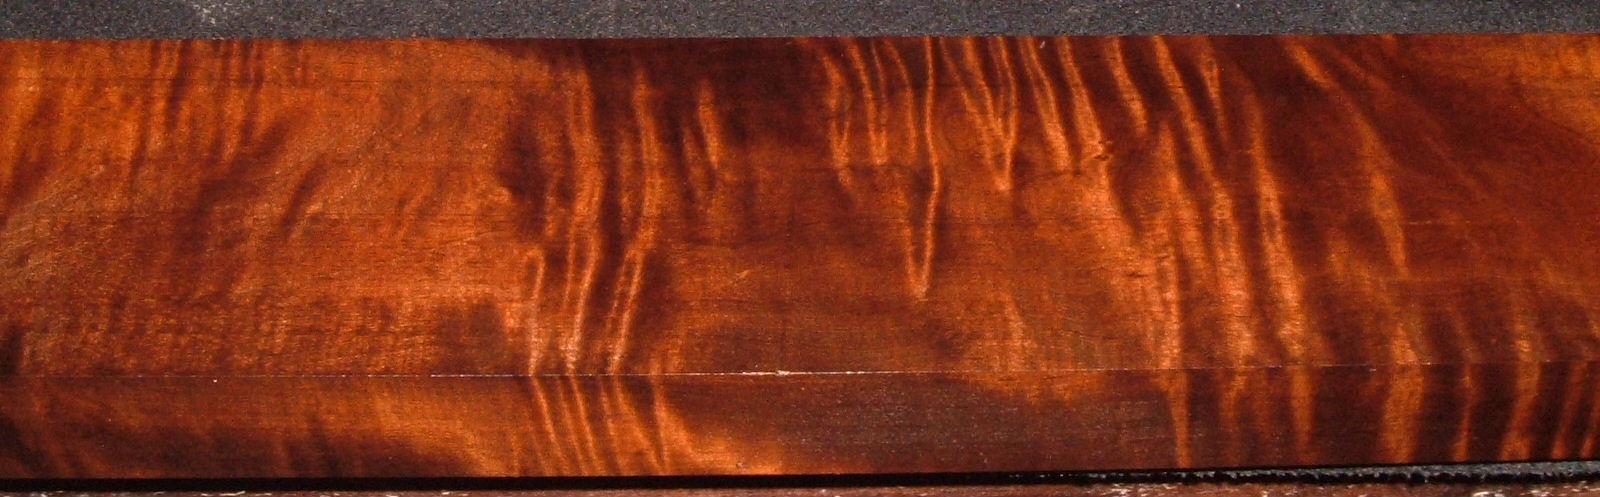 RM2104-122, 1-3/8x4x49, Roasted Curly Maple